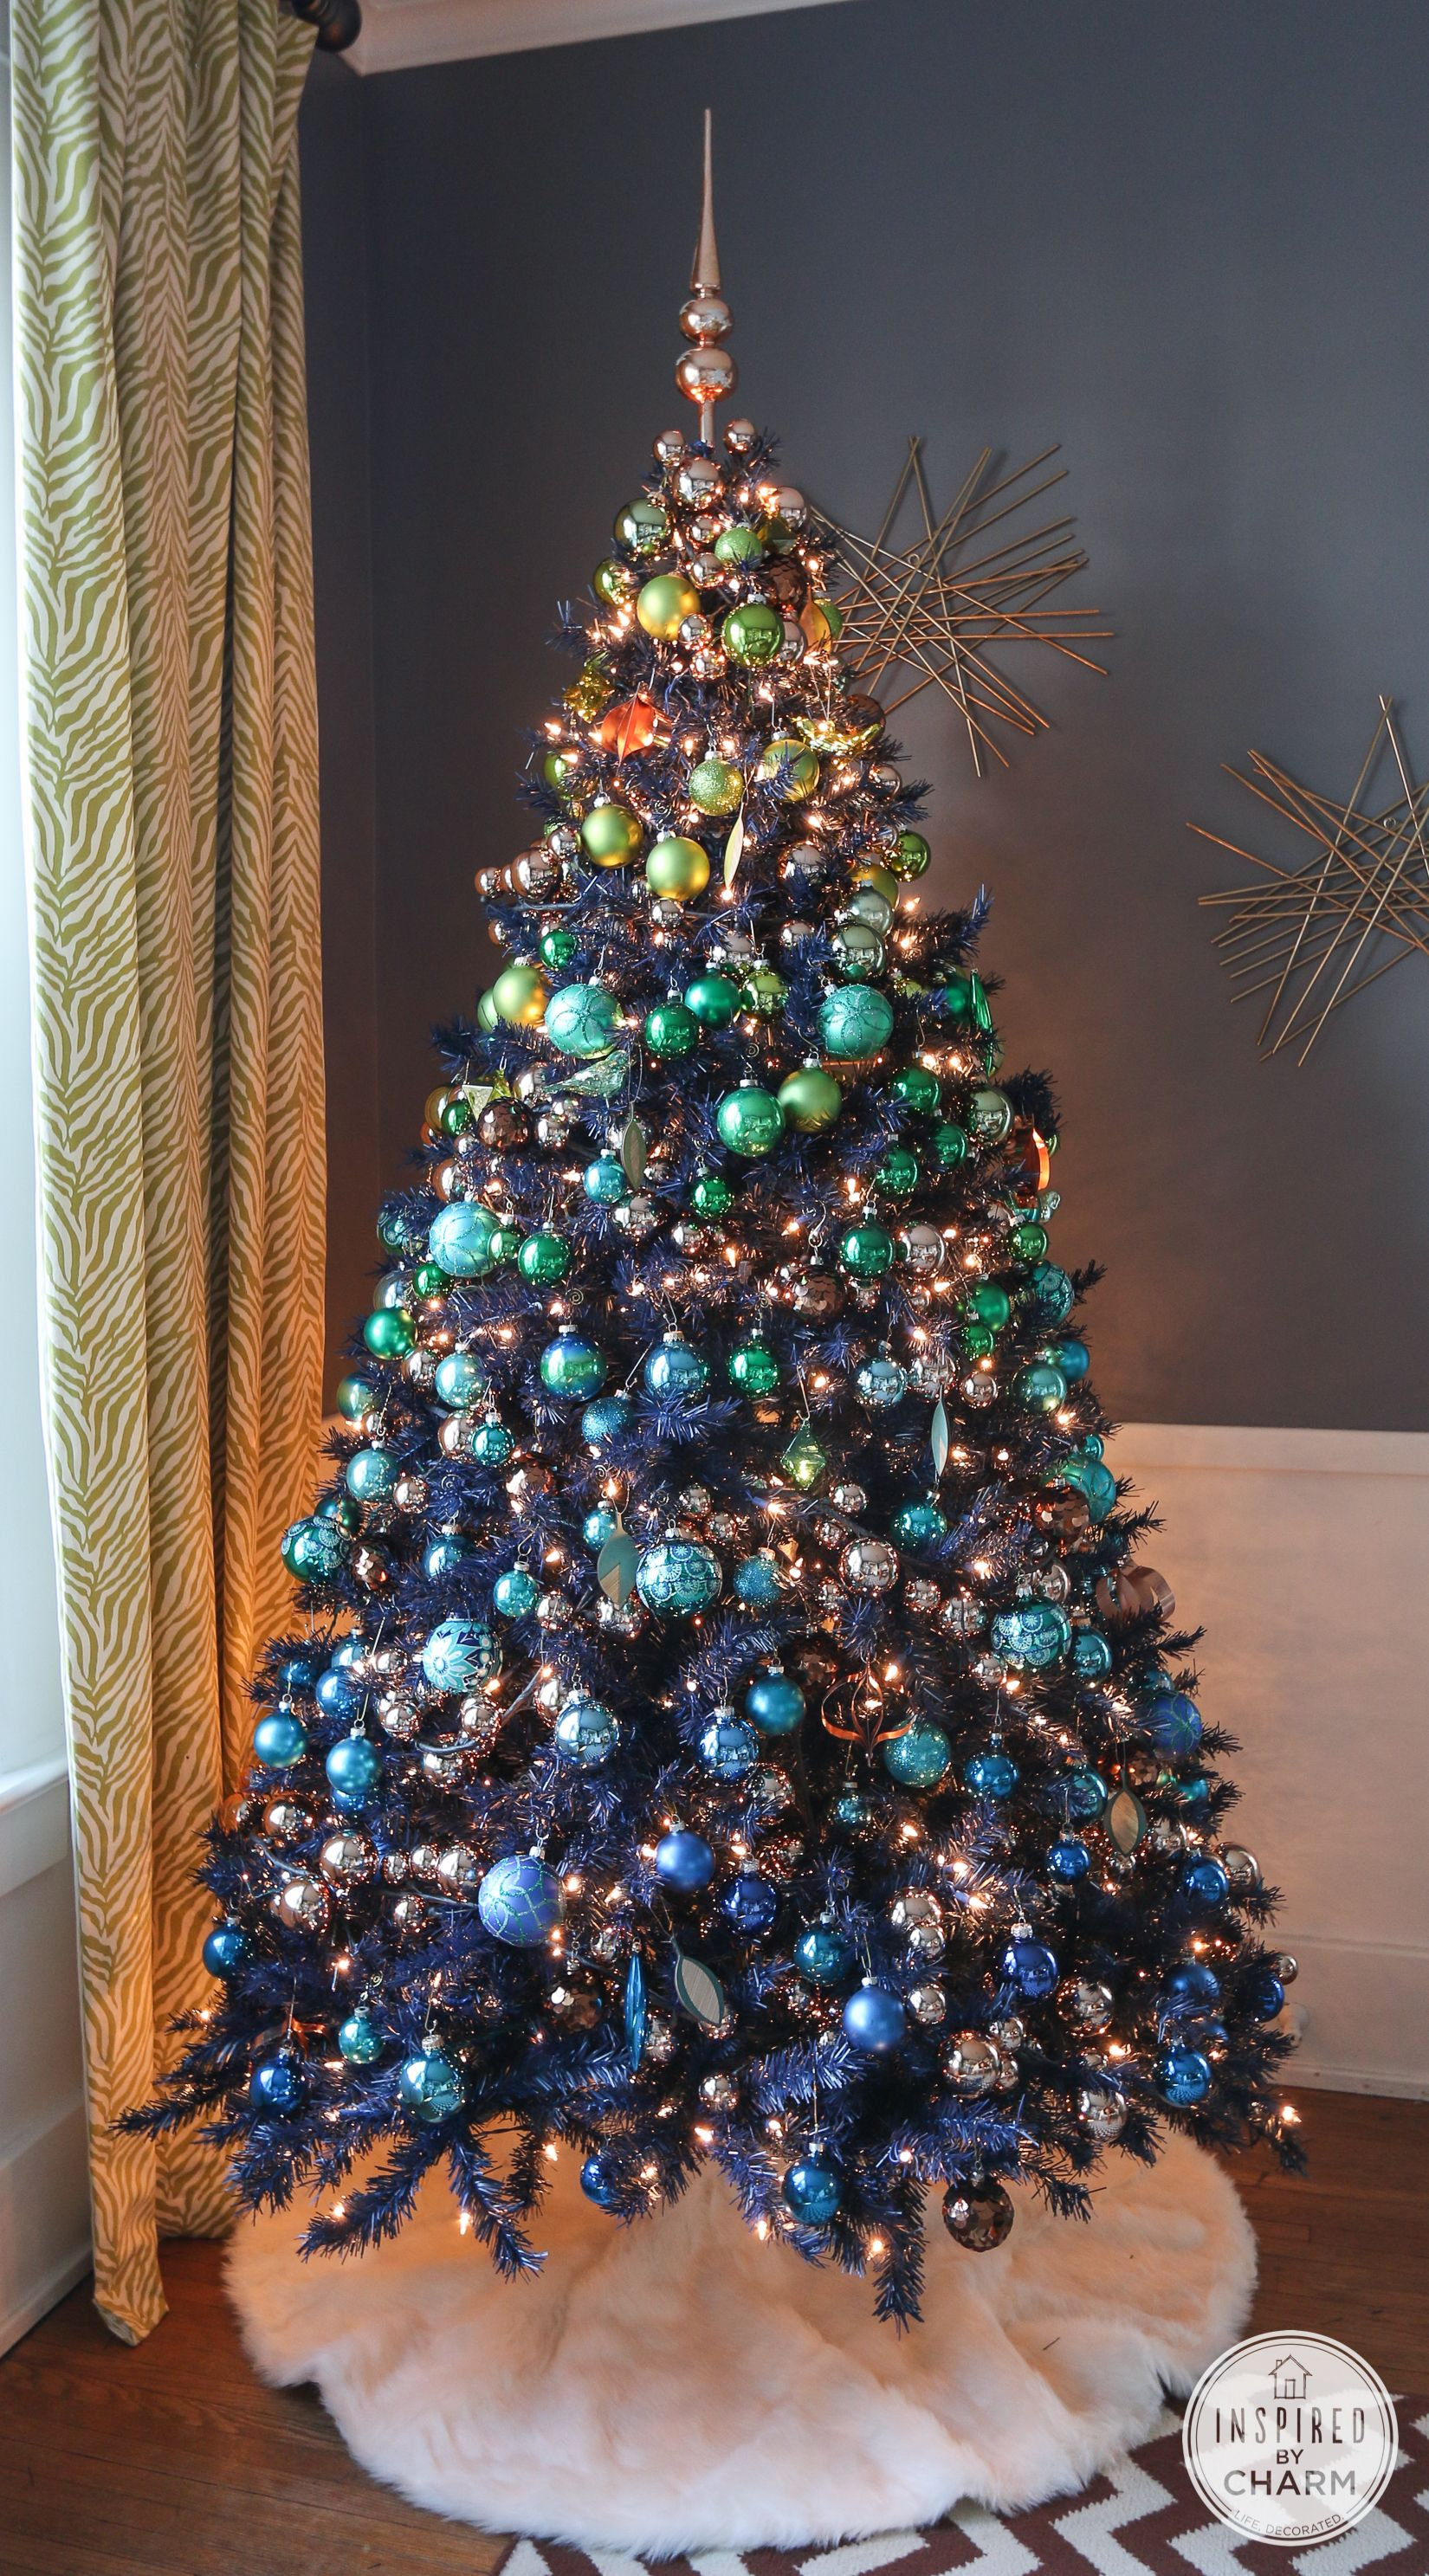 A Blue Christmas Inspired By Charm Green Christmas Tree